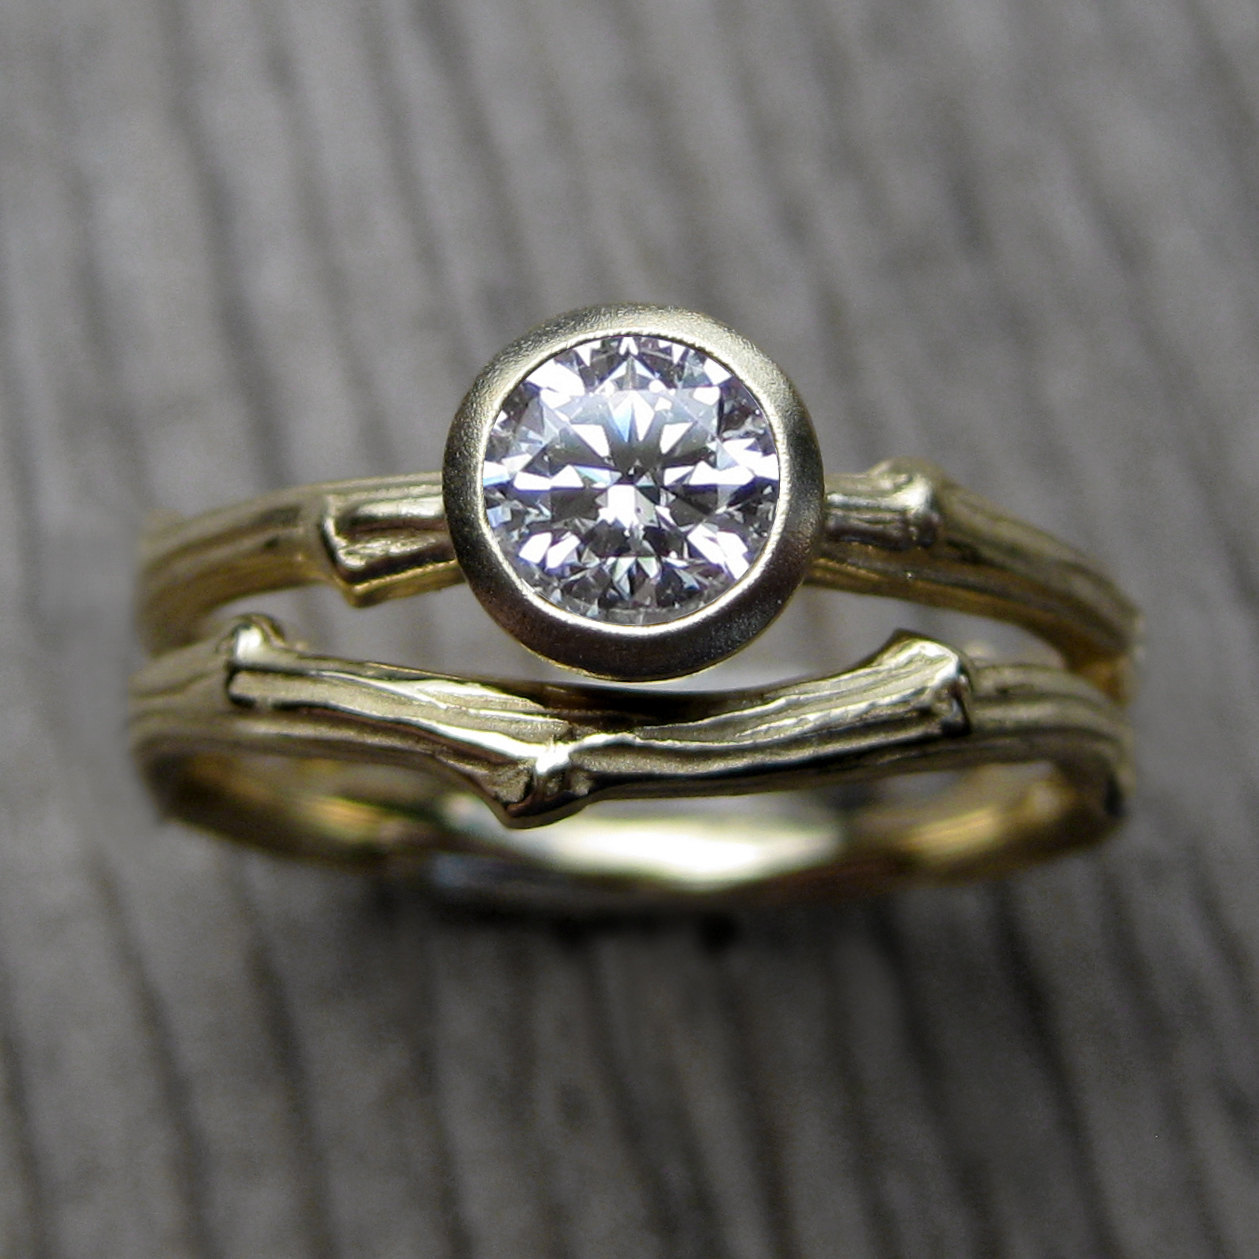 twig engagement ring by kristin coffin | Nature Inspired Wedding Ideas | http://wp.me/p1g0if-x0y